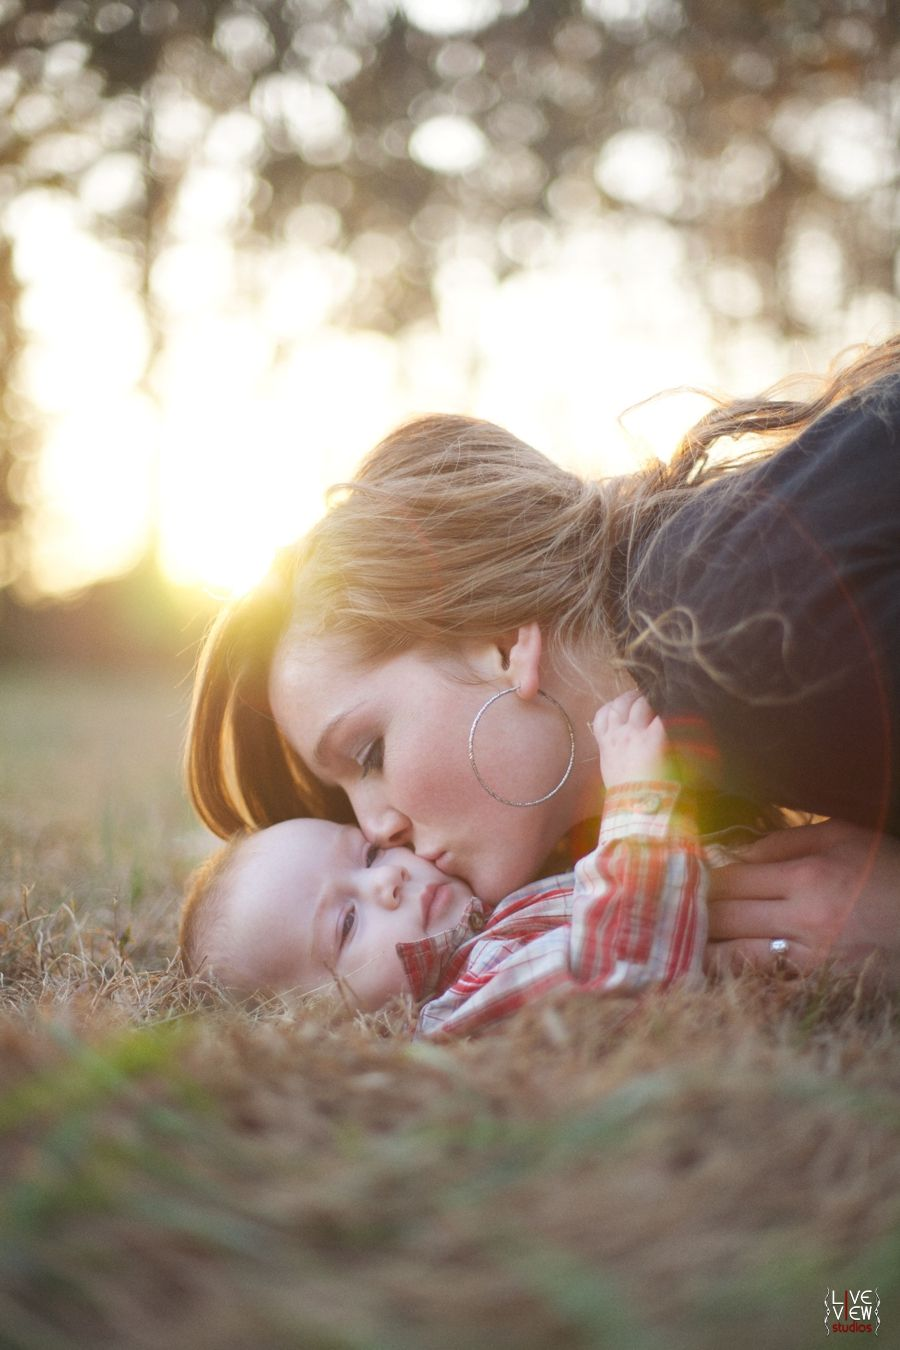 kisses in the sun <3 - #baby #nature #family #fall #autumn #winter ...